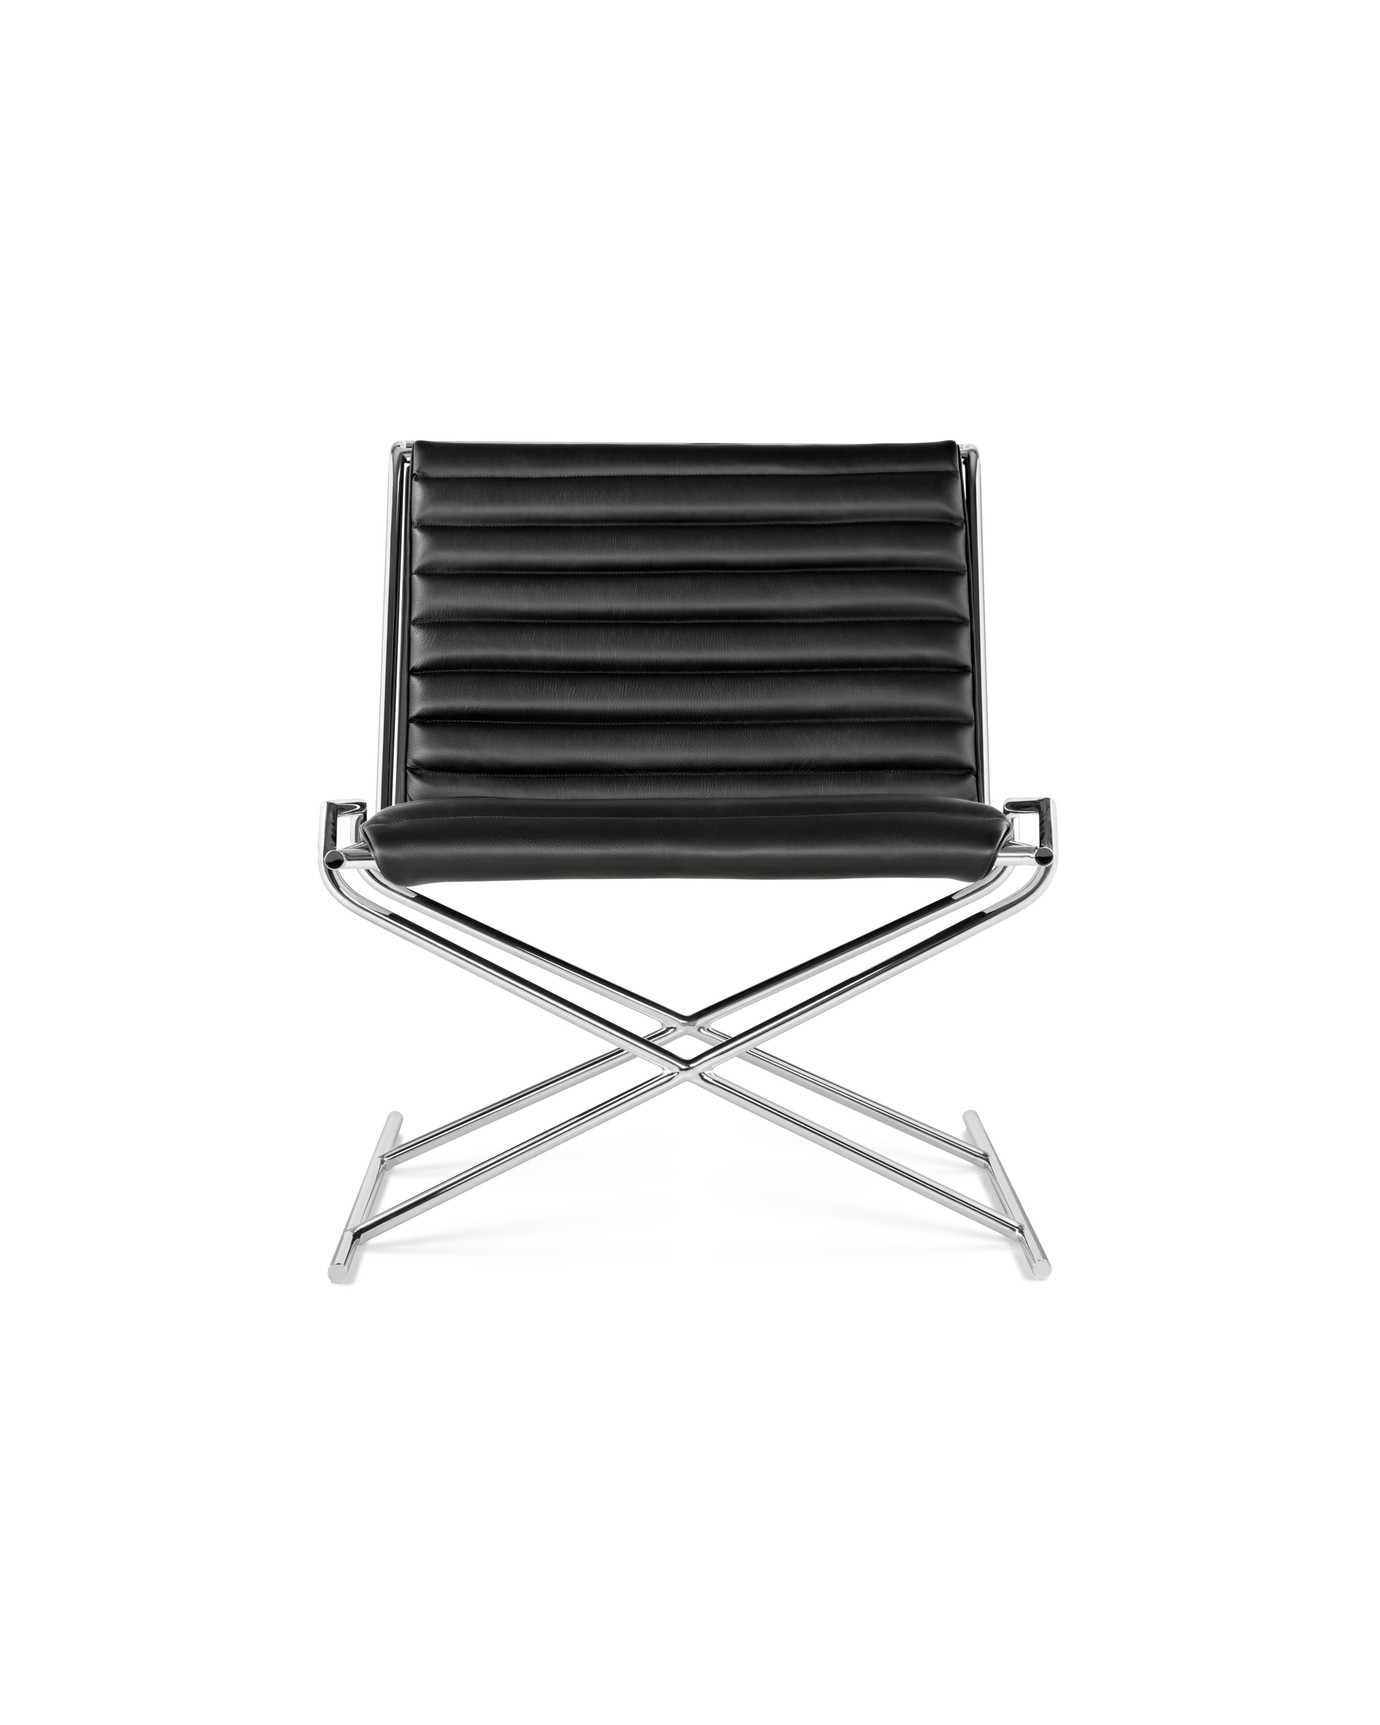 4-Silla-Lounge-Sled-Frontal-1380